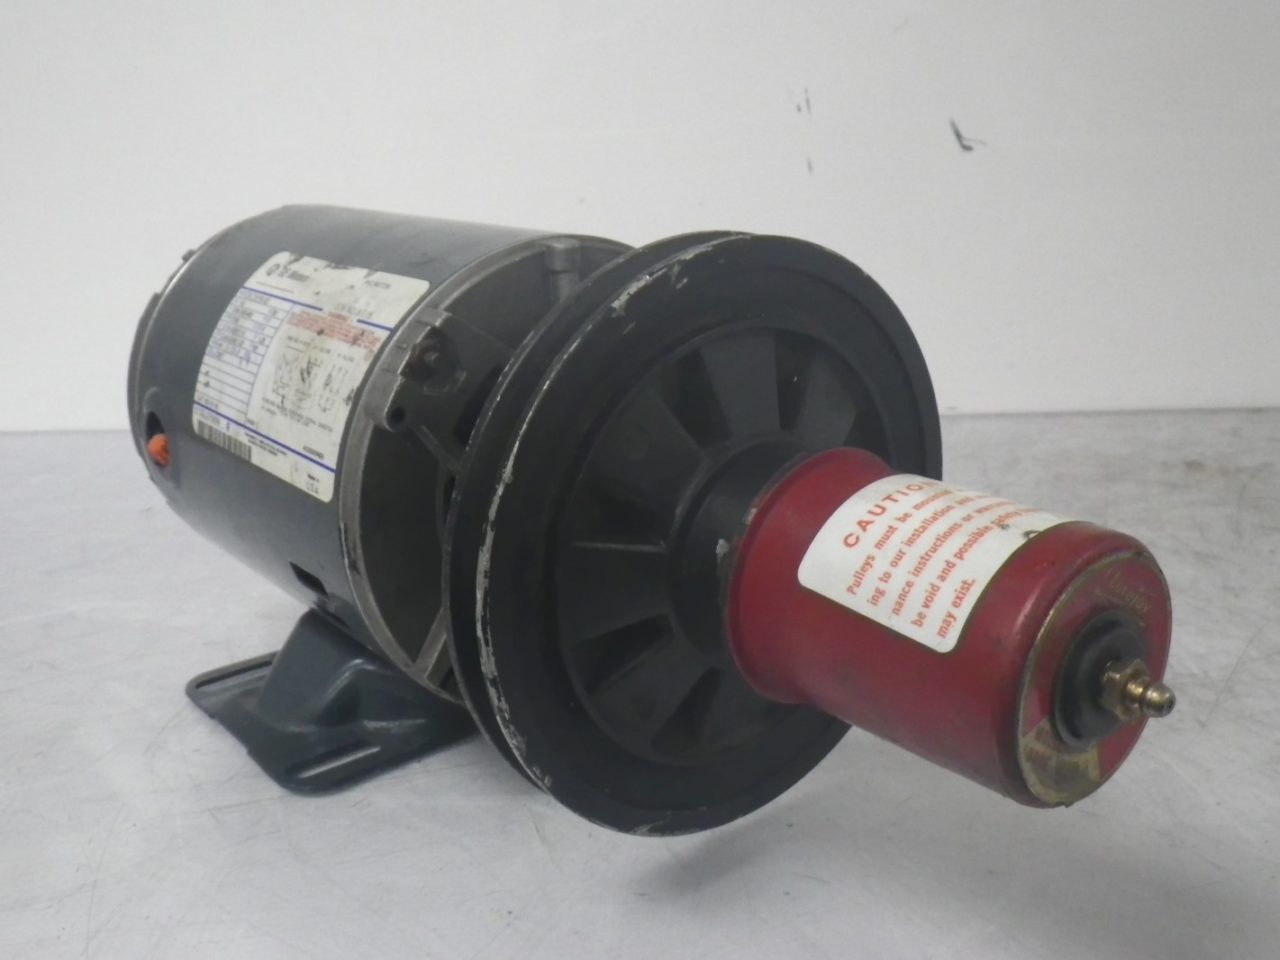 IMGP65595K36MN4B 160 58B GE Motor With LOVEJOY Pulley Type 160 58b 12hp 208-230460v 1725rpm (4)